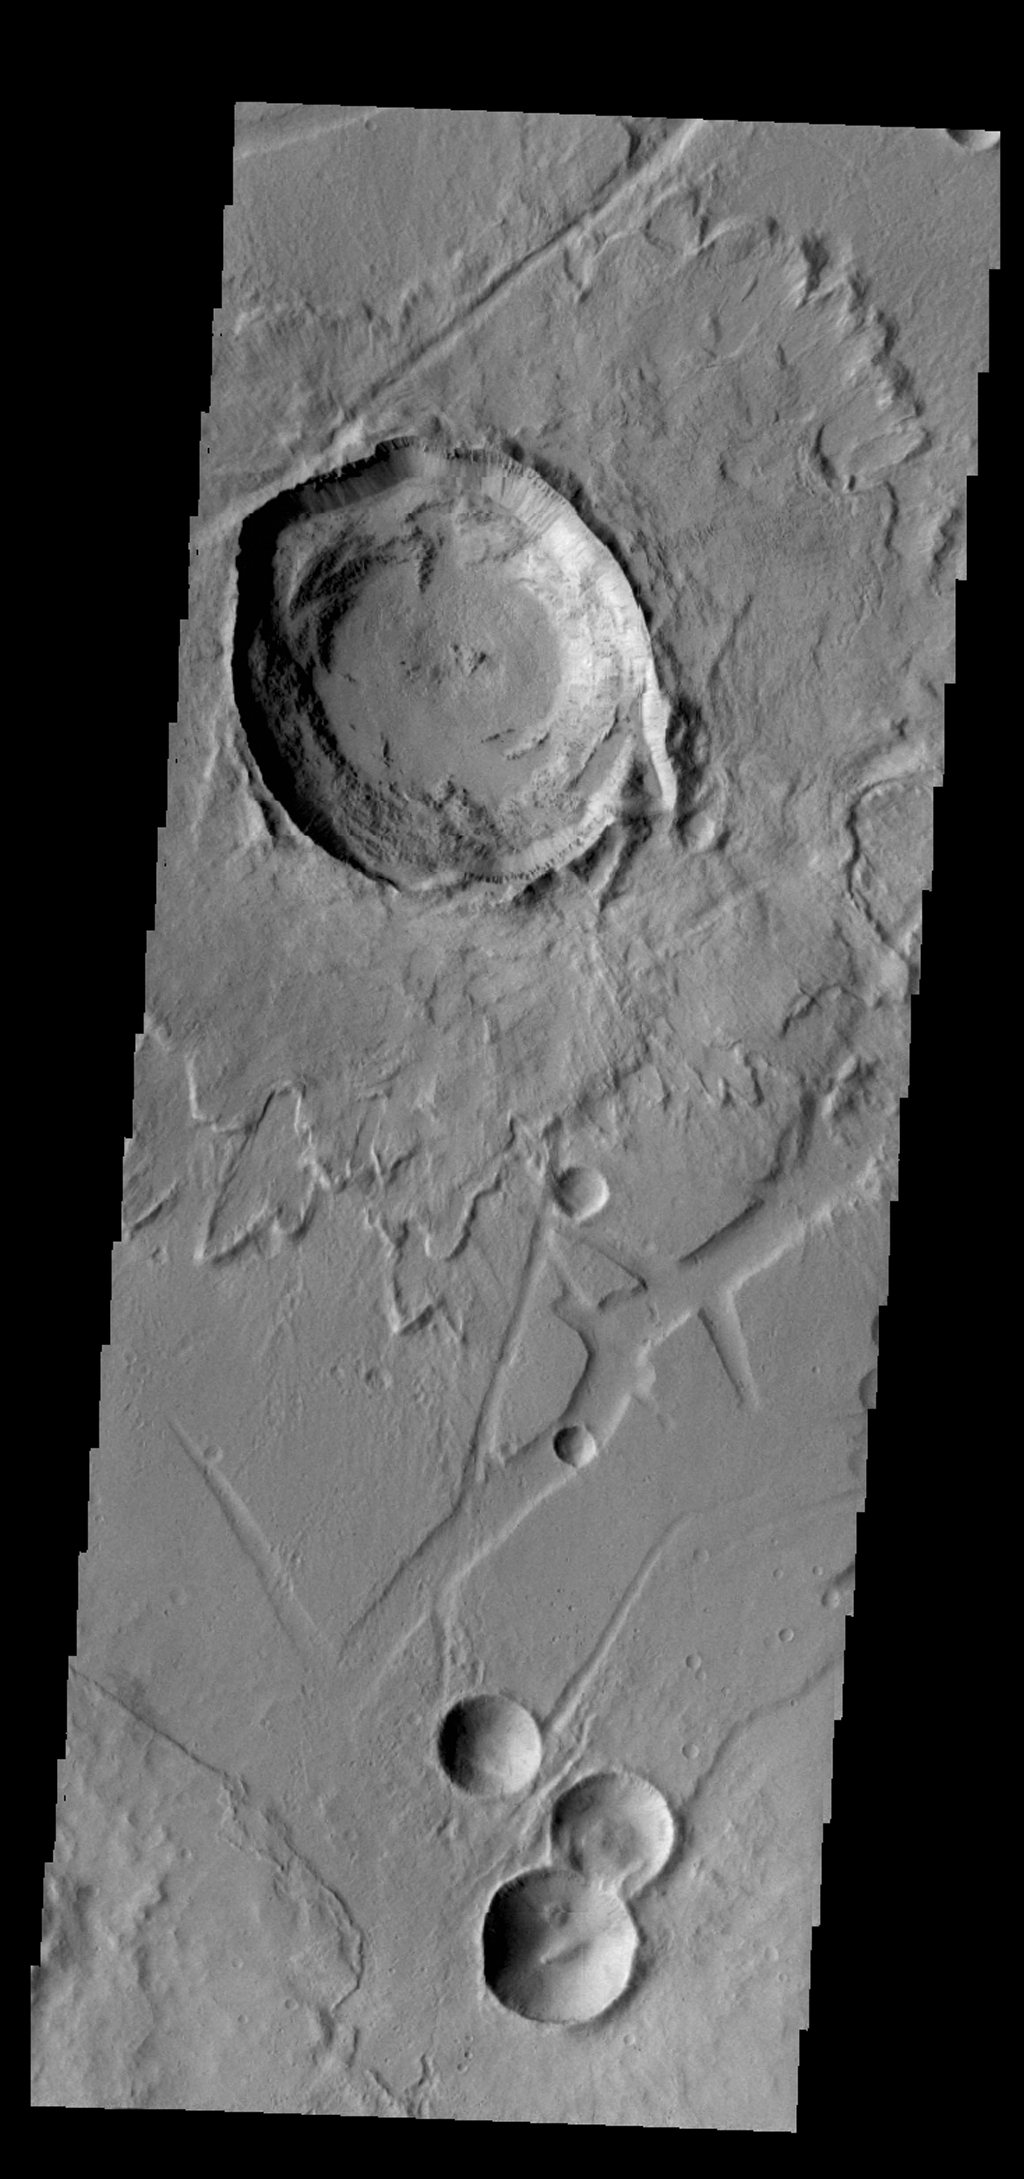 The relatively young Canala Crater and its ejecta overlie the tectonic structures of Labeatis Fossae as seen by NASA's 2001 Mars Odyssey spacecraft.